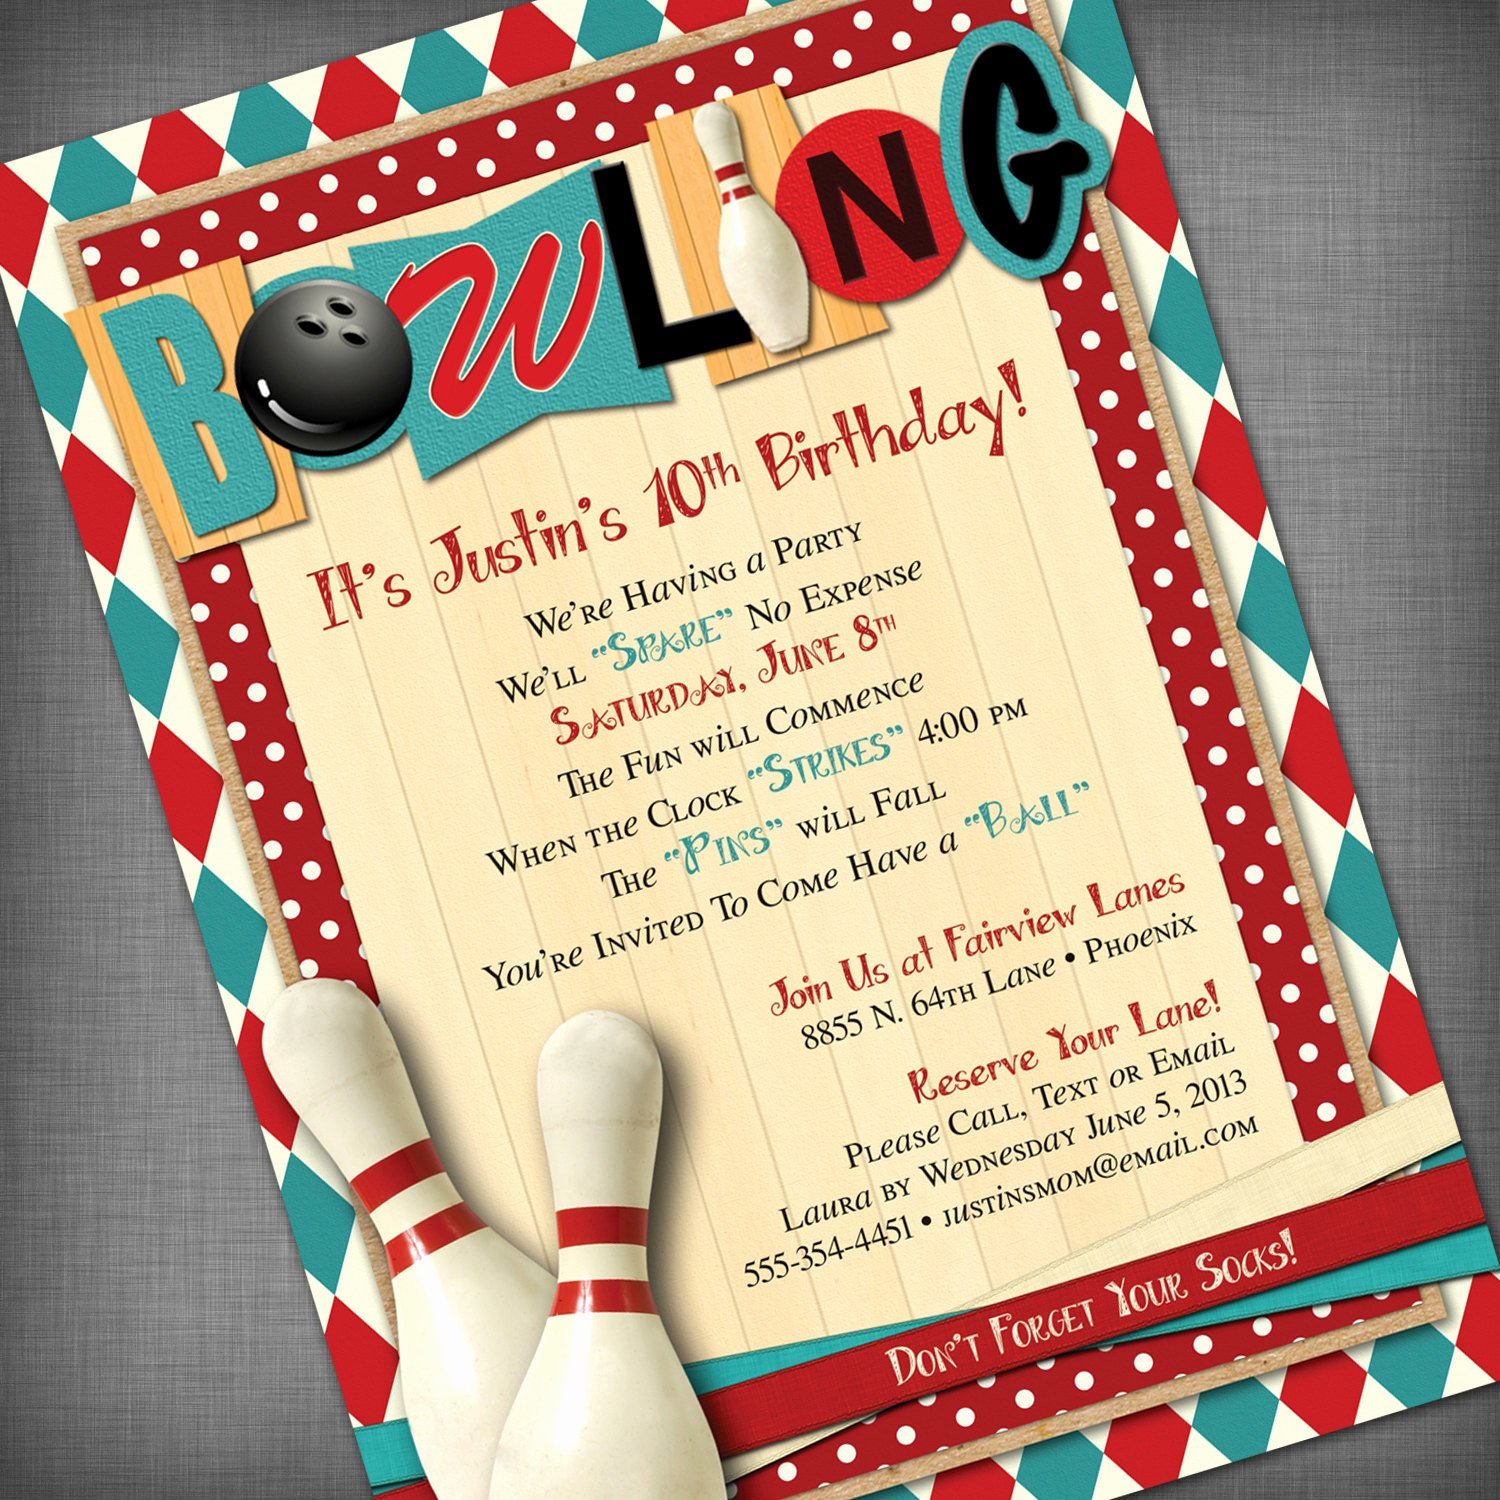 Bowling Party Invitation Template Inspirational Bowling Party Customized Printable Invitation